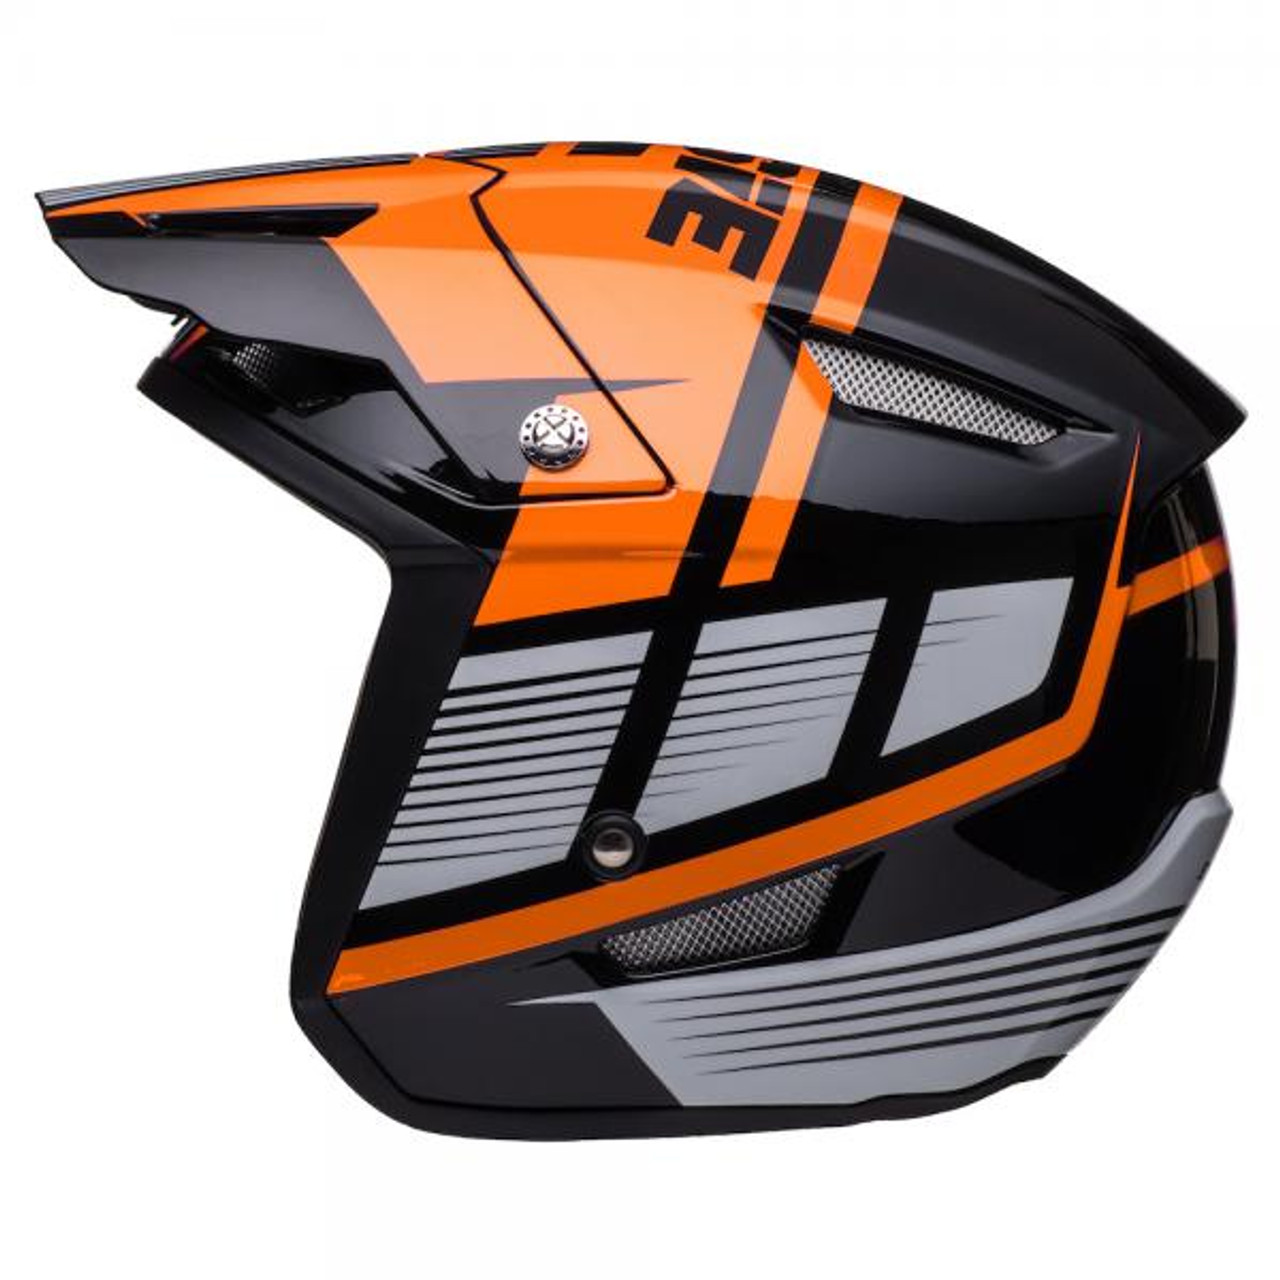 Helmet HT1 Struktur, black/ fluo orange